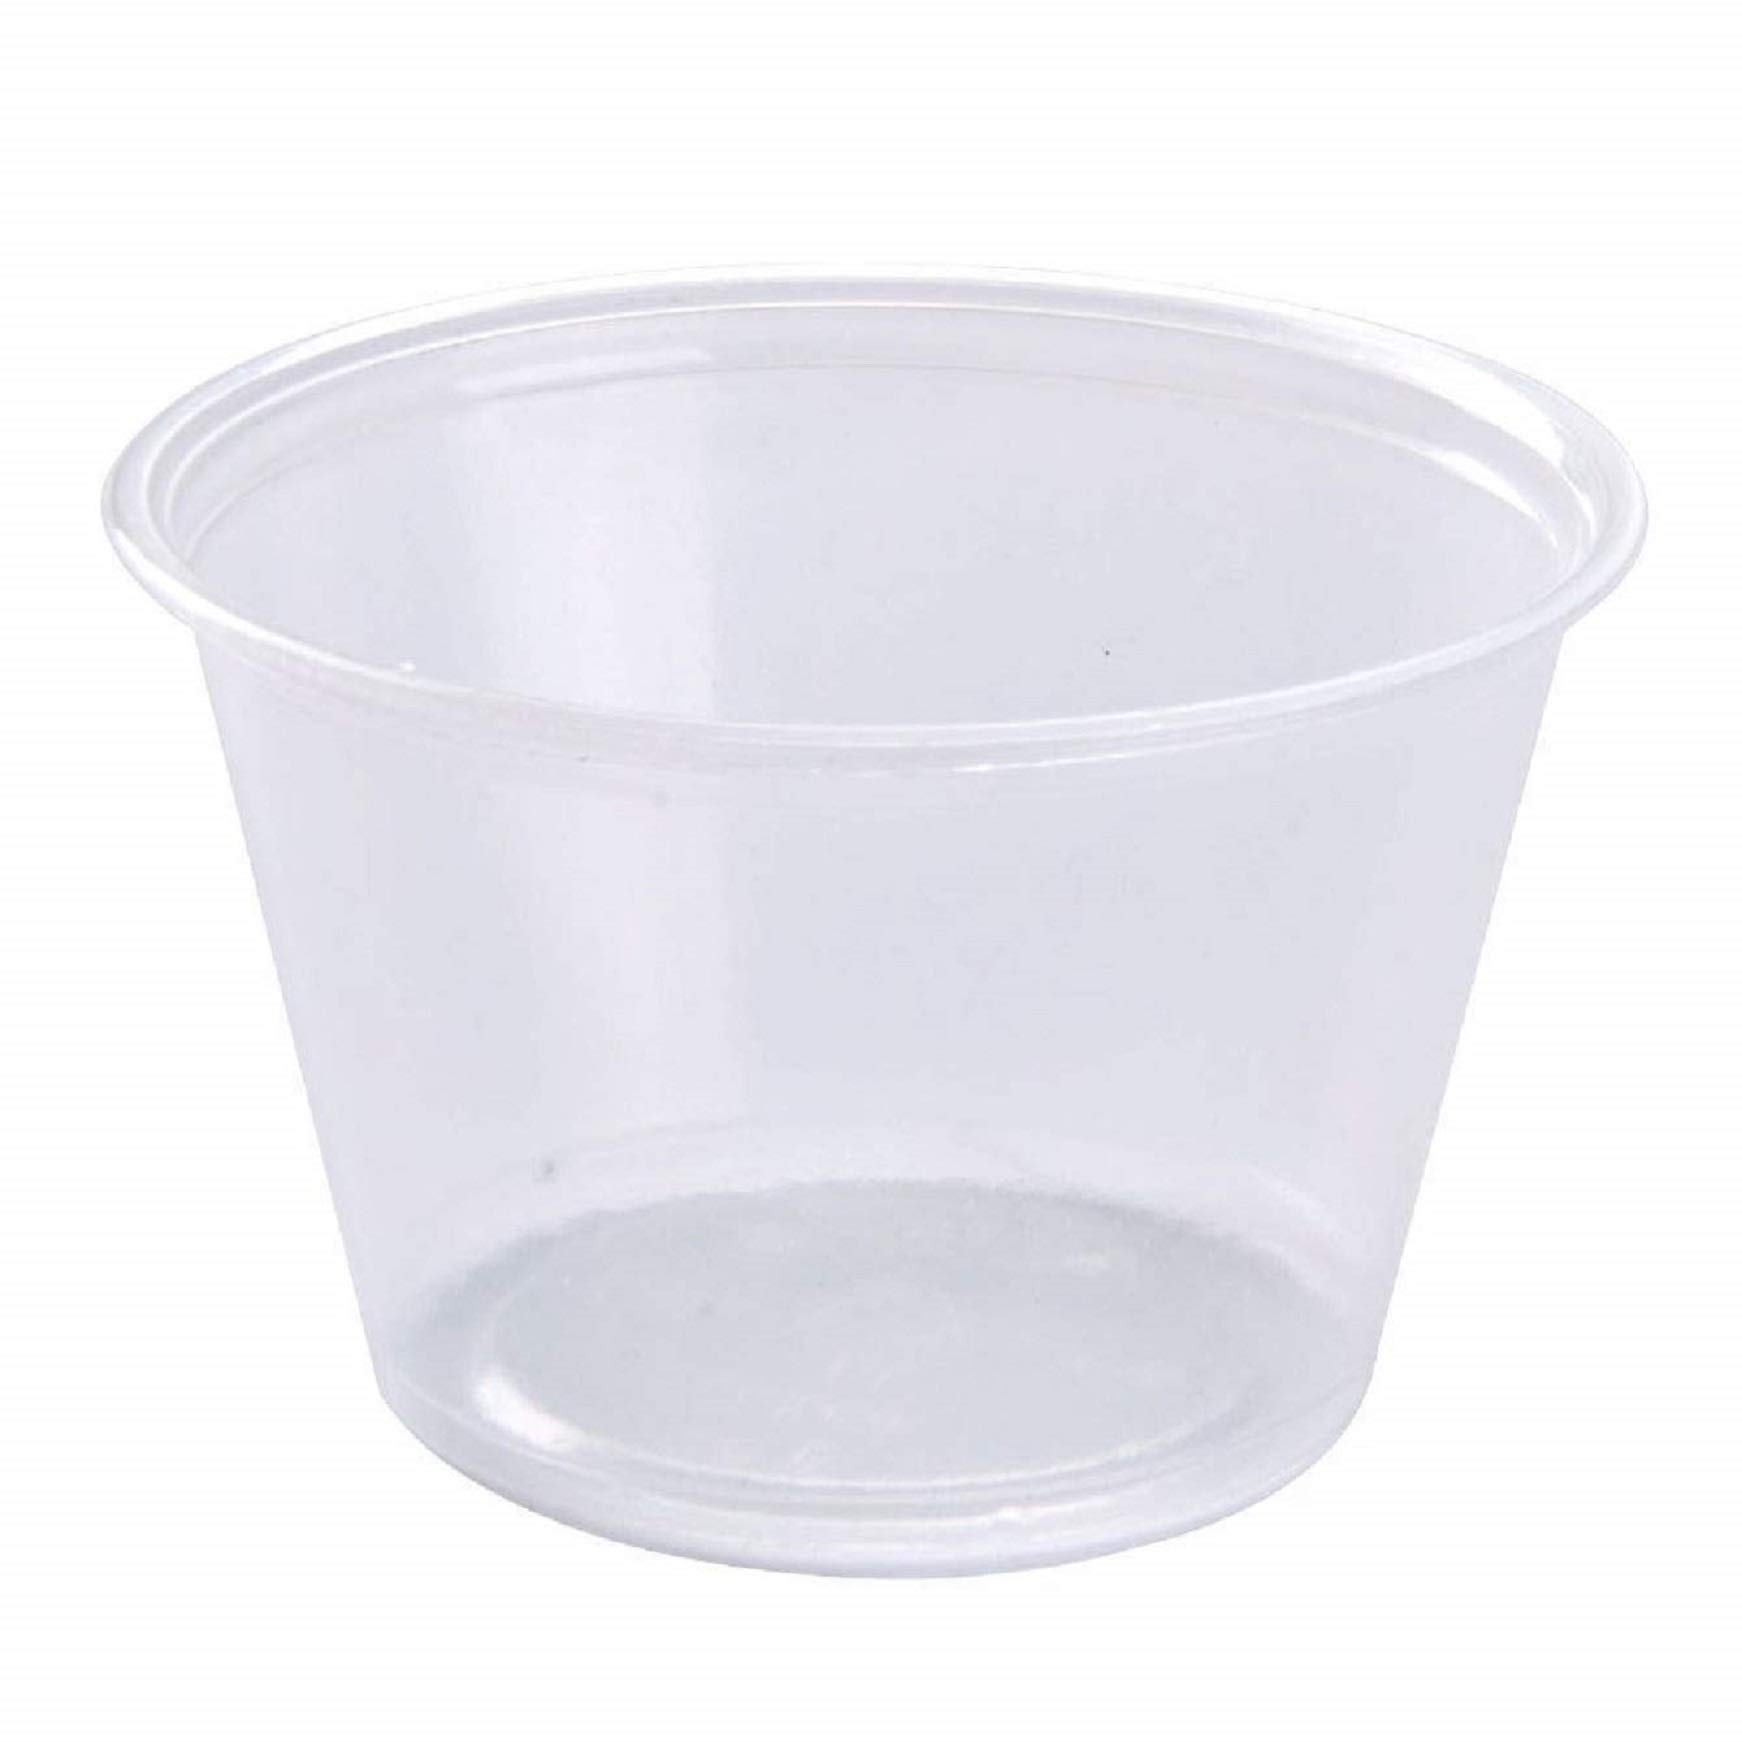 200 4 oz Plastic Souffle Portion Cups; Perfect for sauces, dips, Salsa or Other Food Samples